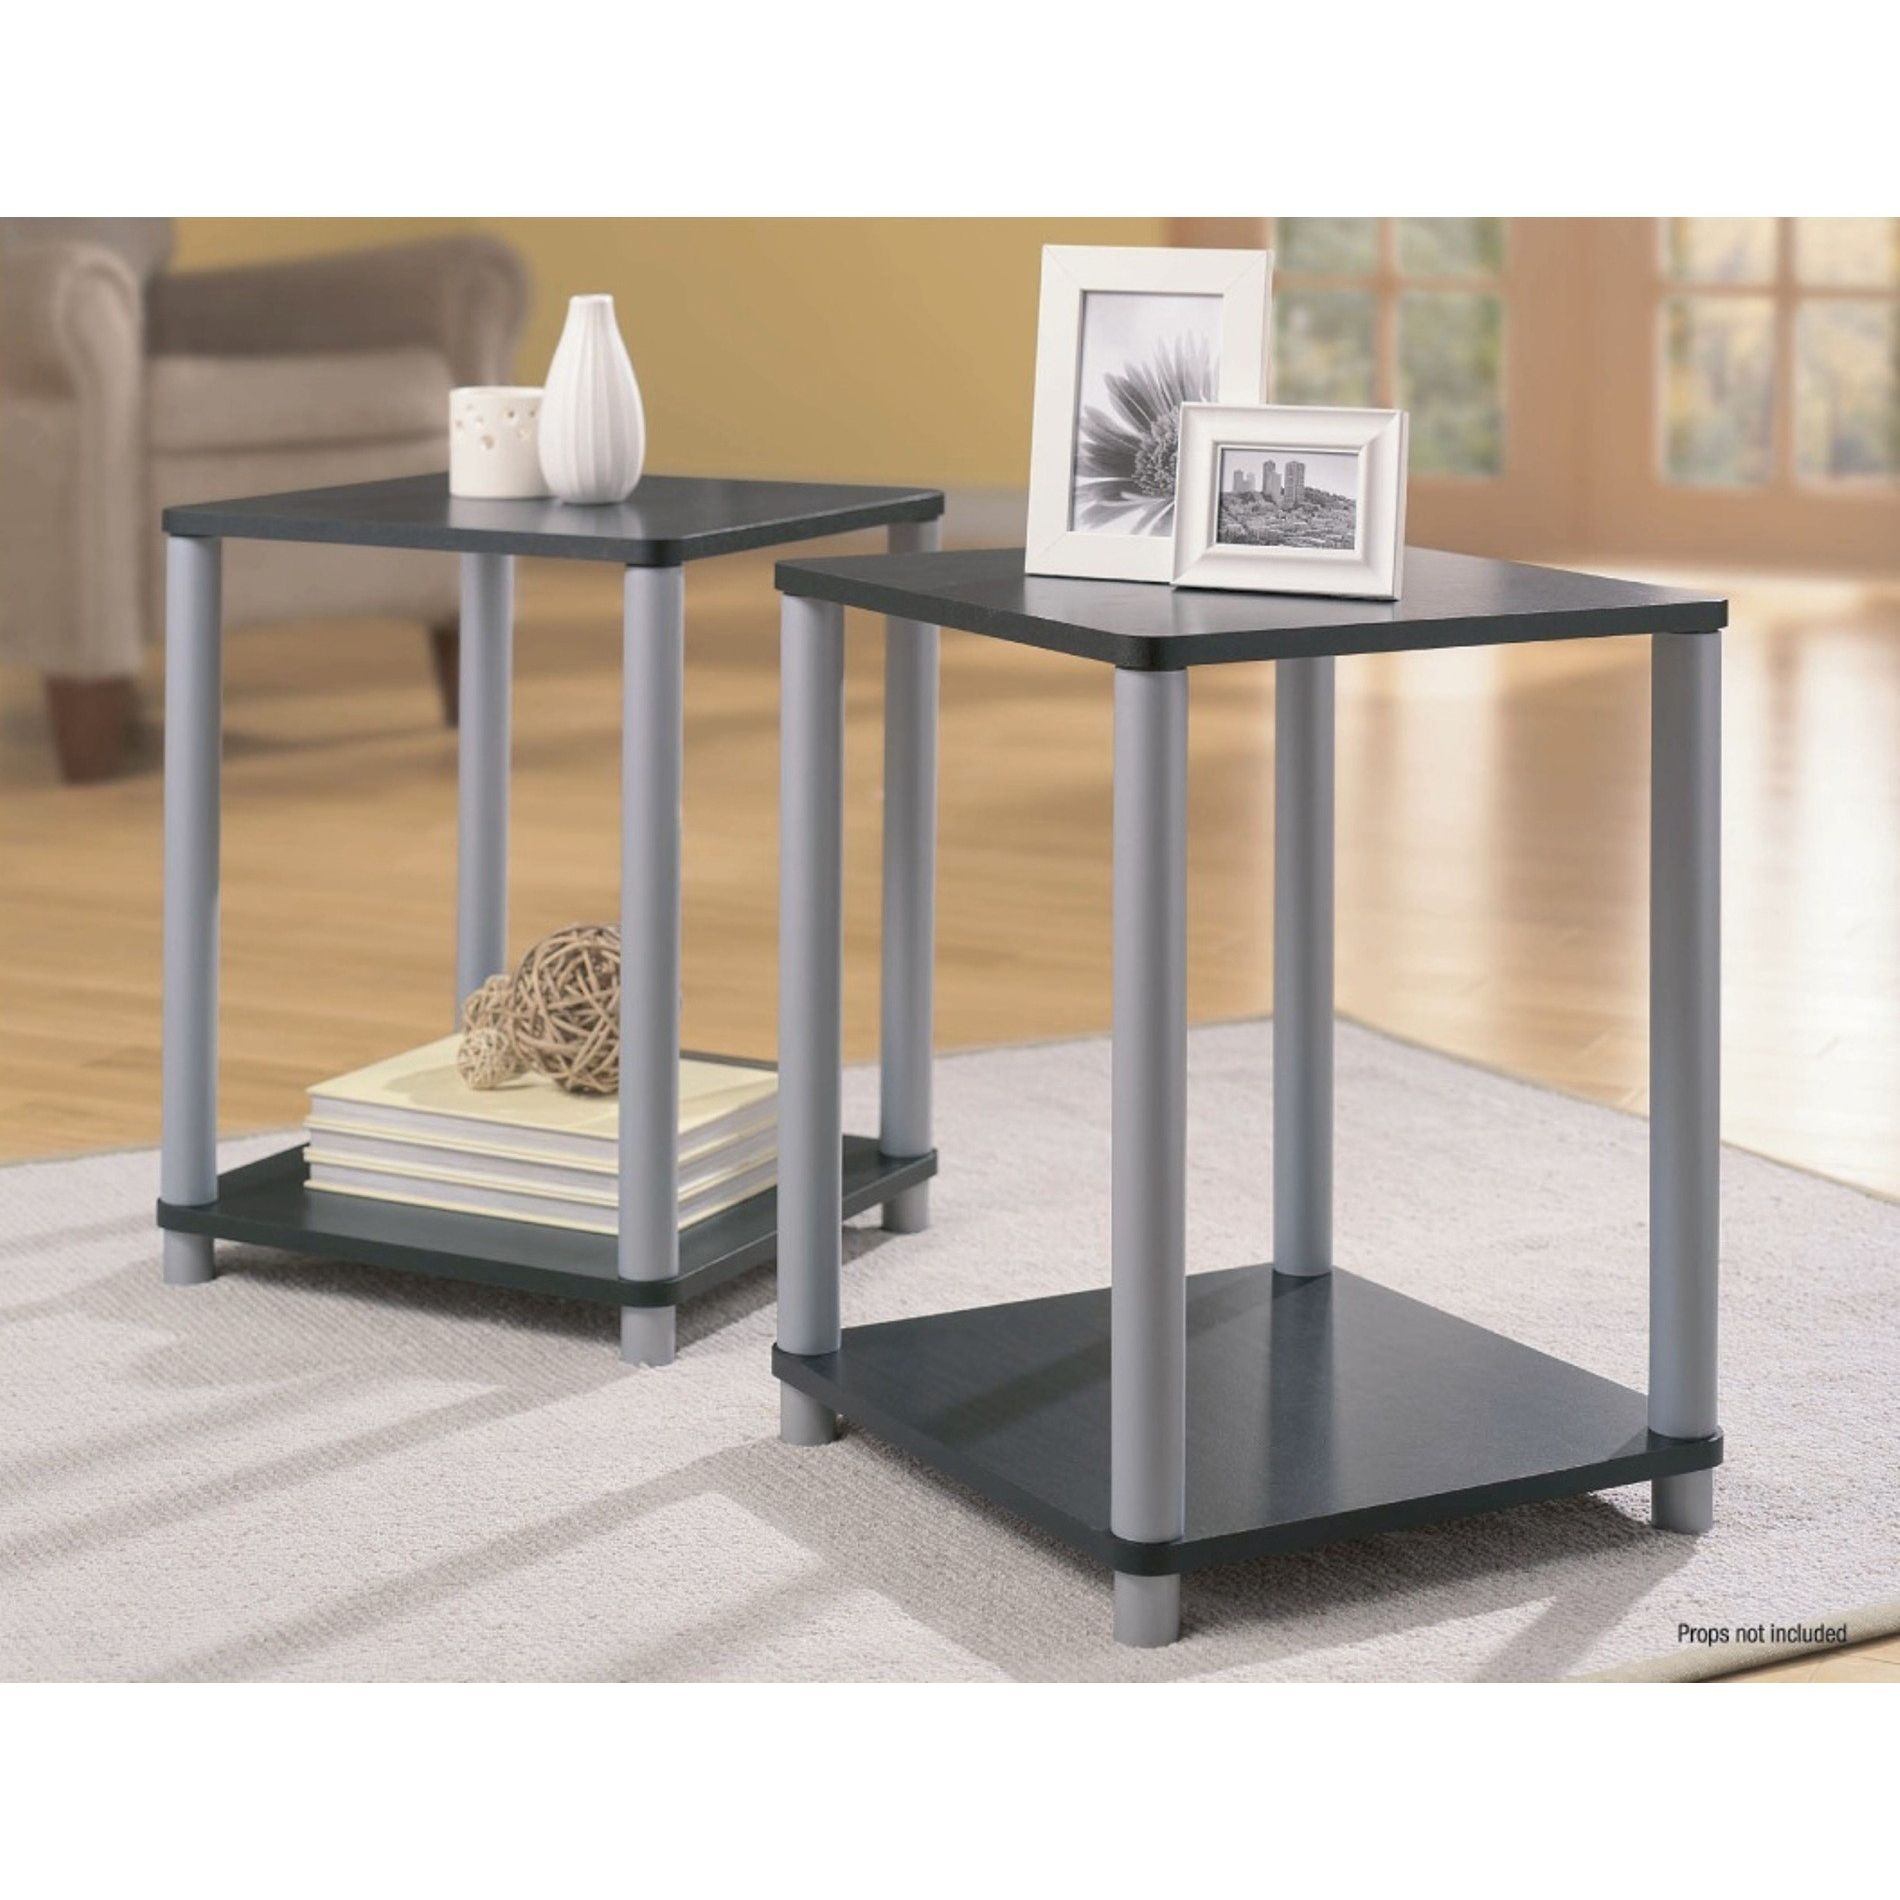 essential home end tables black and silver table set spin prod room essentials white accent farm dining barn door kitchen cabinets round quilted topper patterns long cabinet